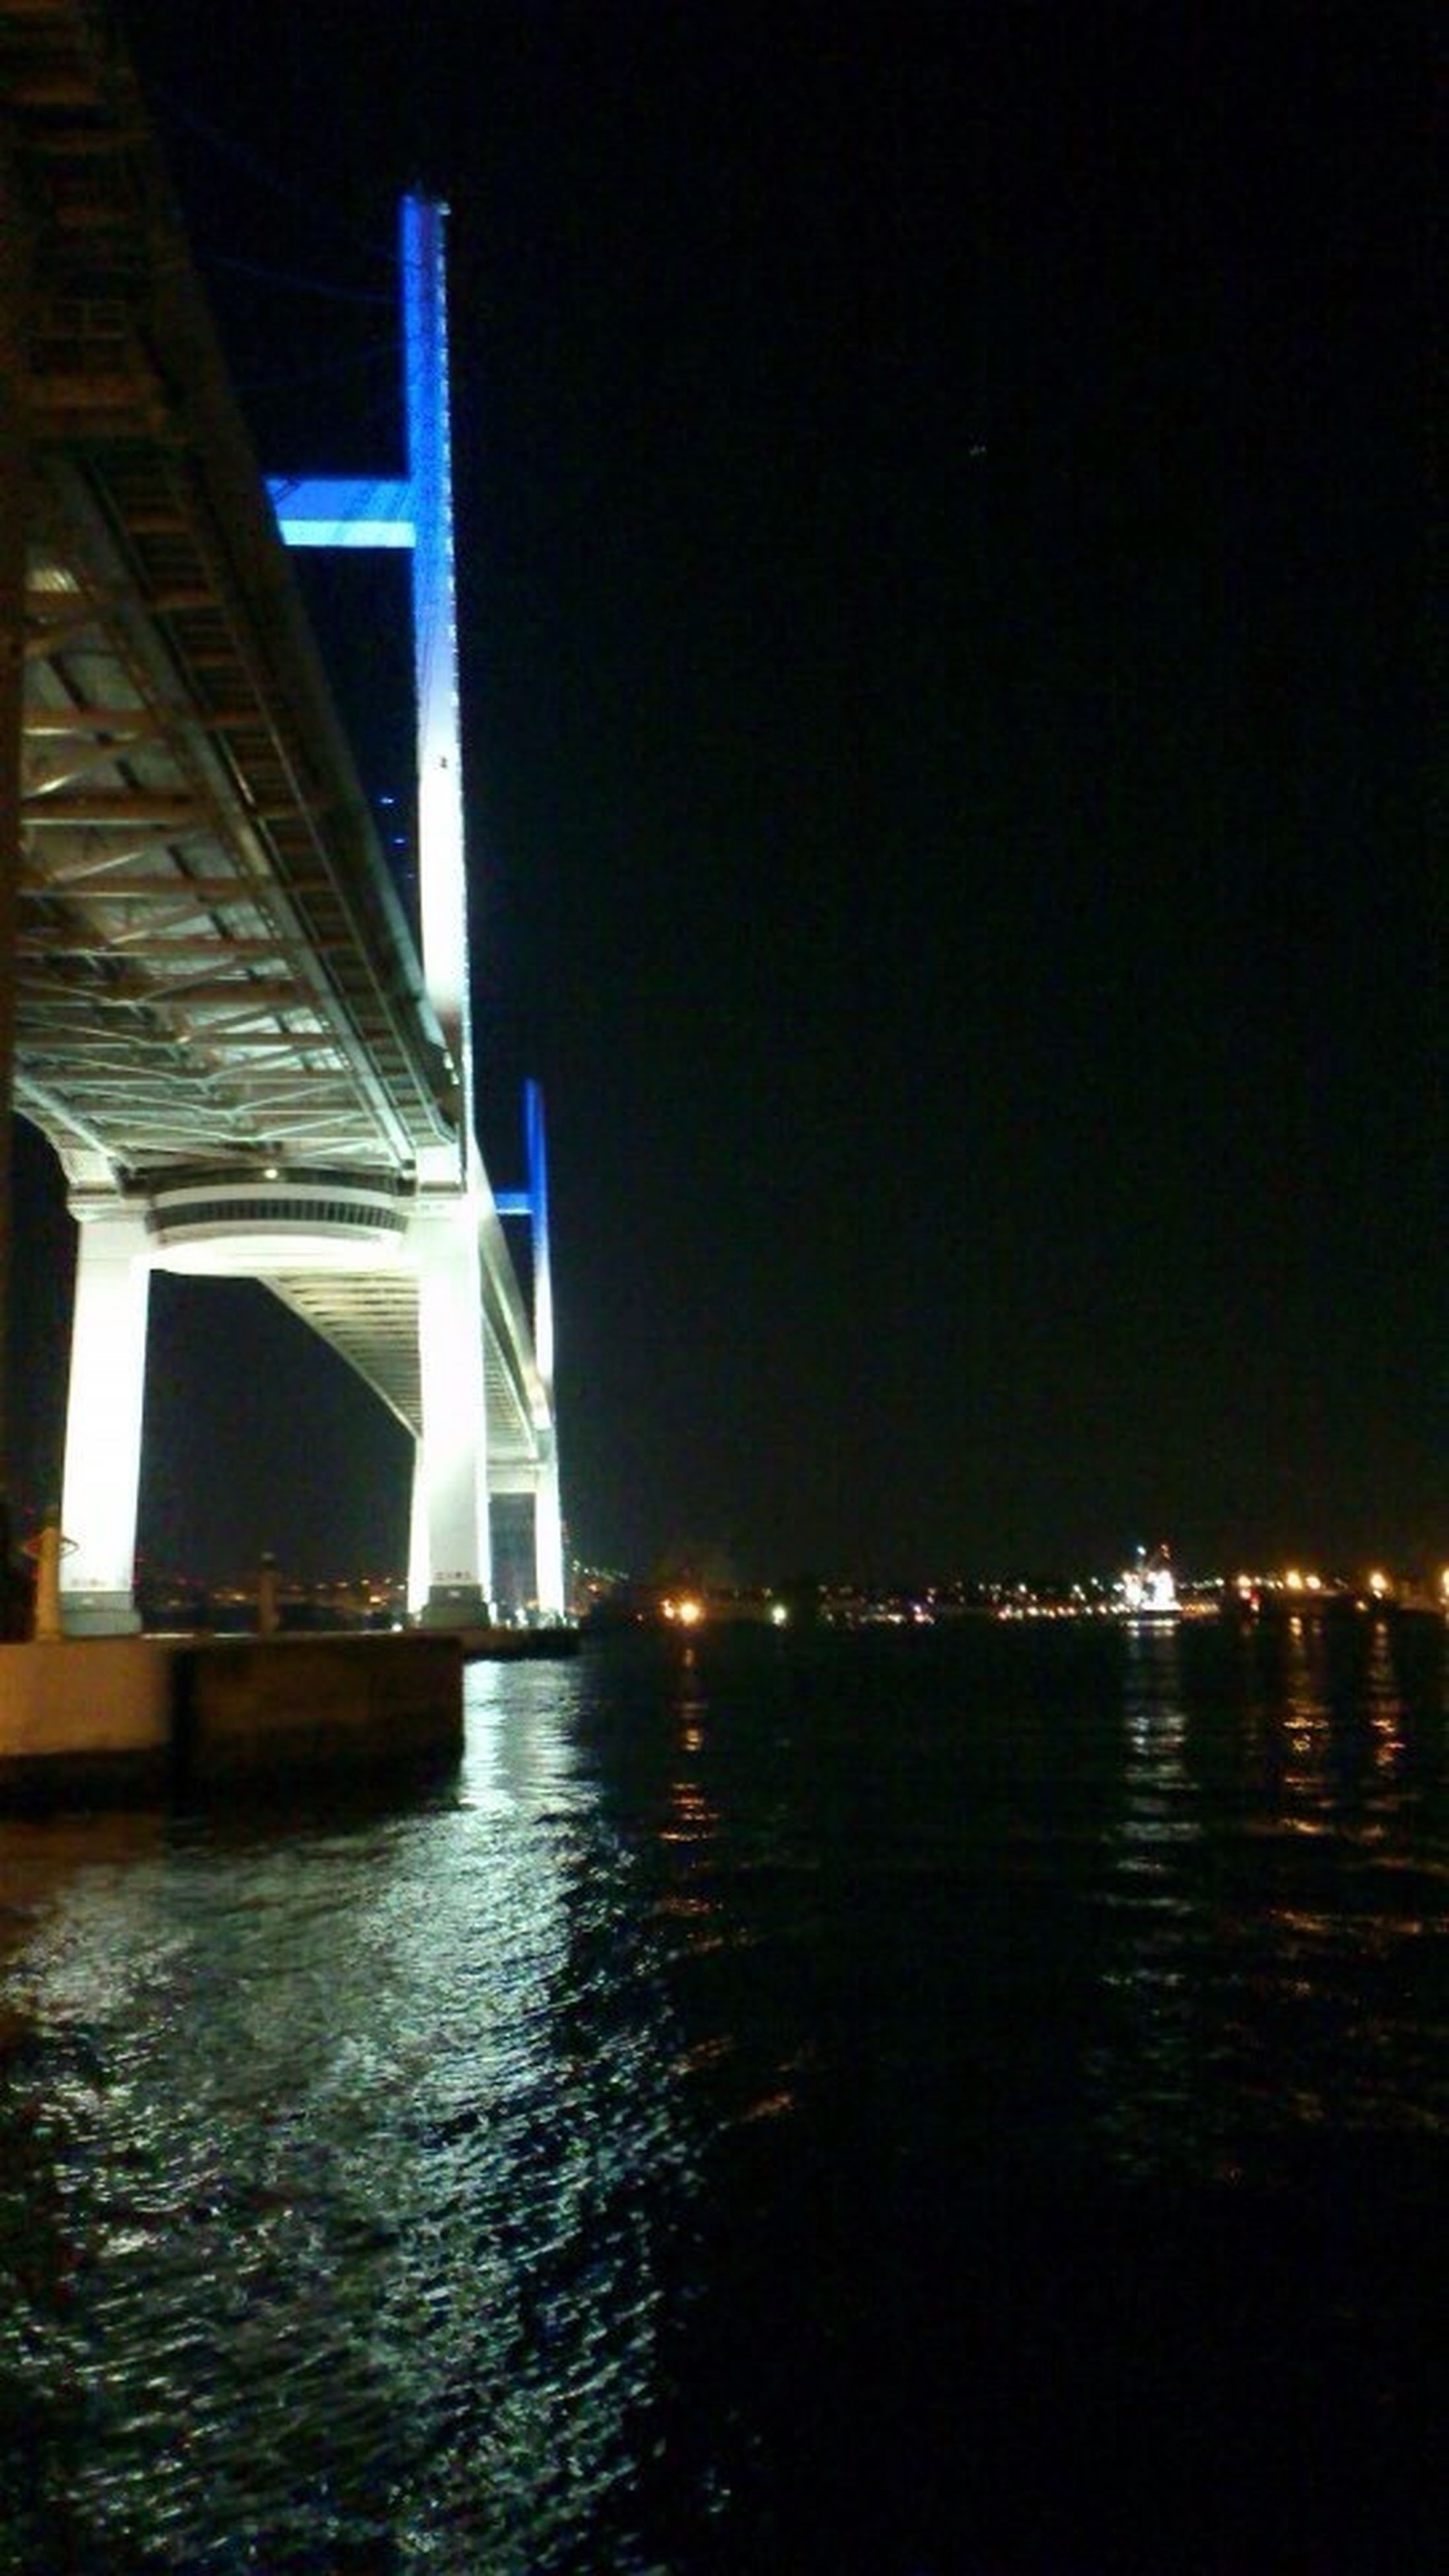 architecture, built structure, illuminated, waterfront, water, night, bridge - man made structure, connection, river, building exterior, transportation, bridge, engineering, reflection, sky, city, suspension bridge, sea, no people, outdoors